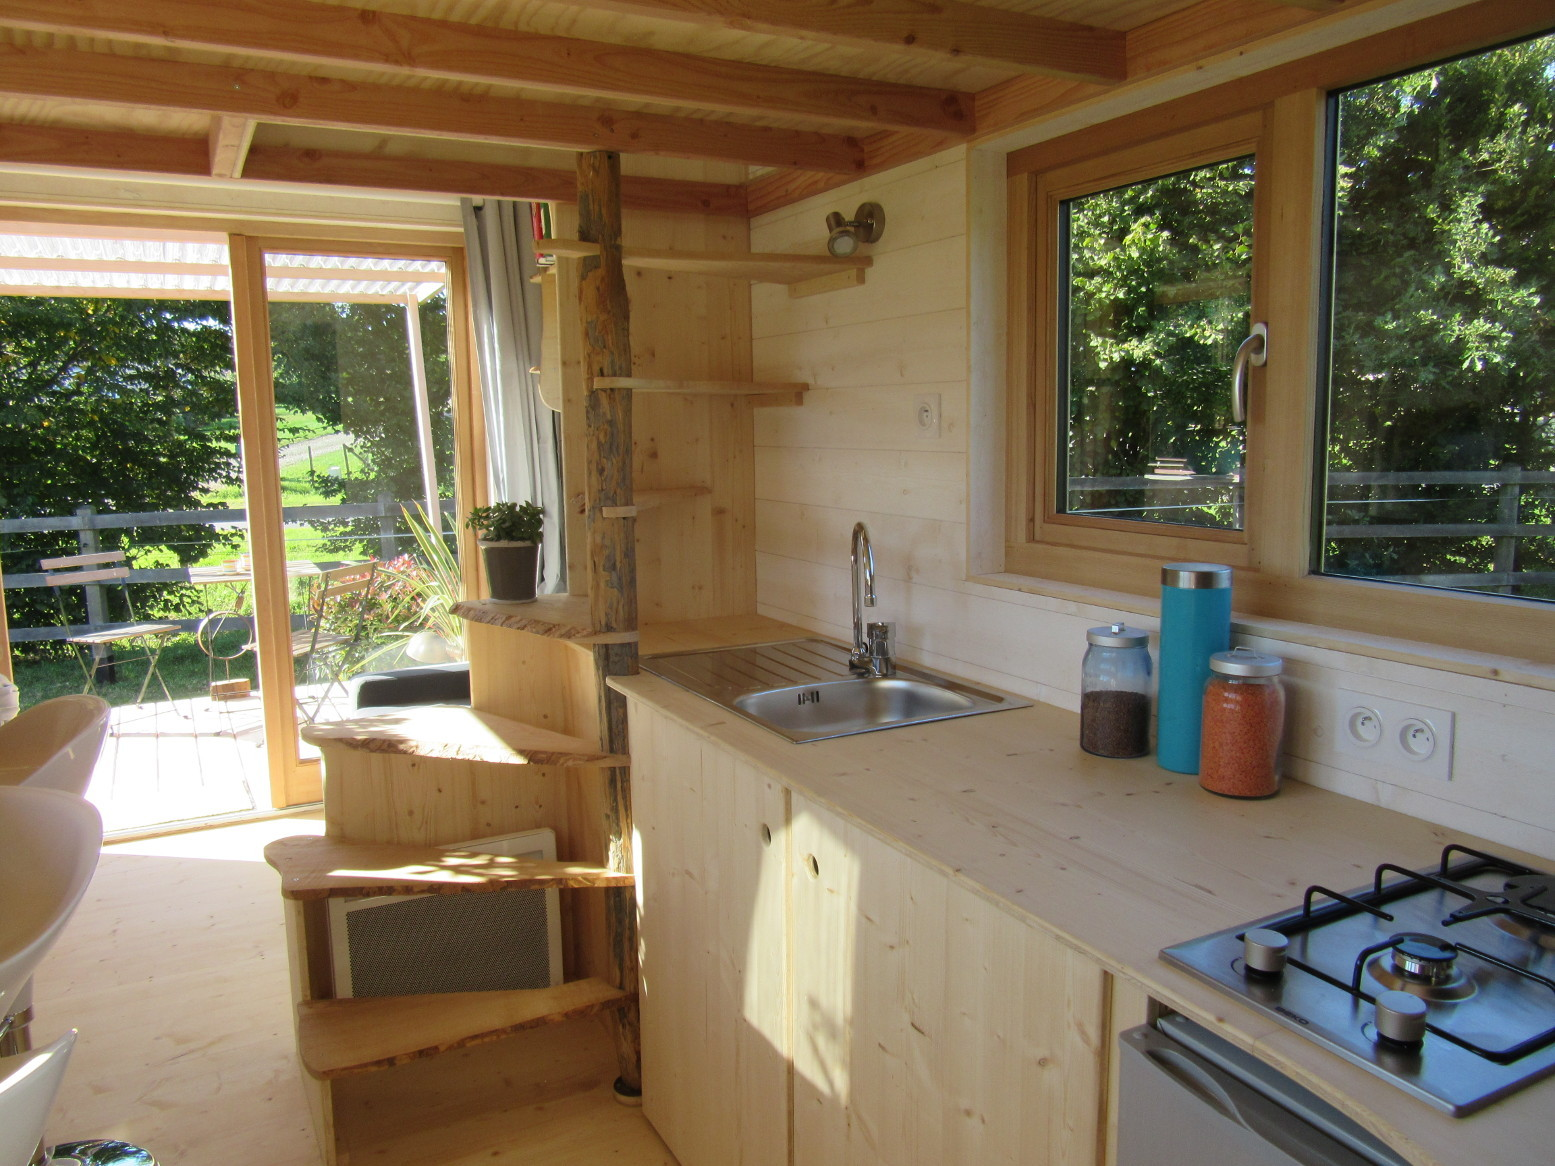 Designing A Small House La Tiny House Tiny House Builder In France